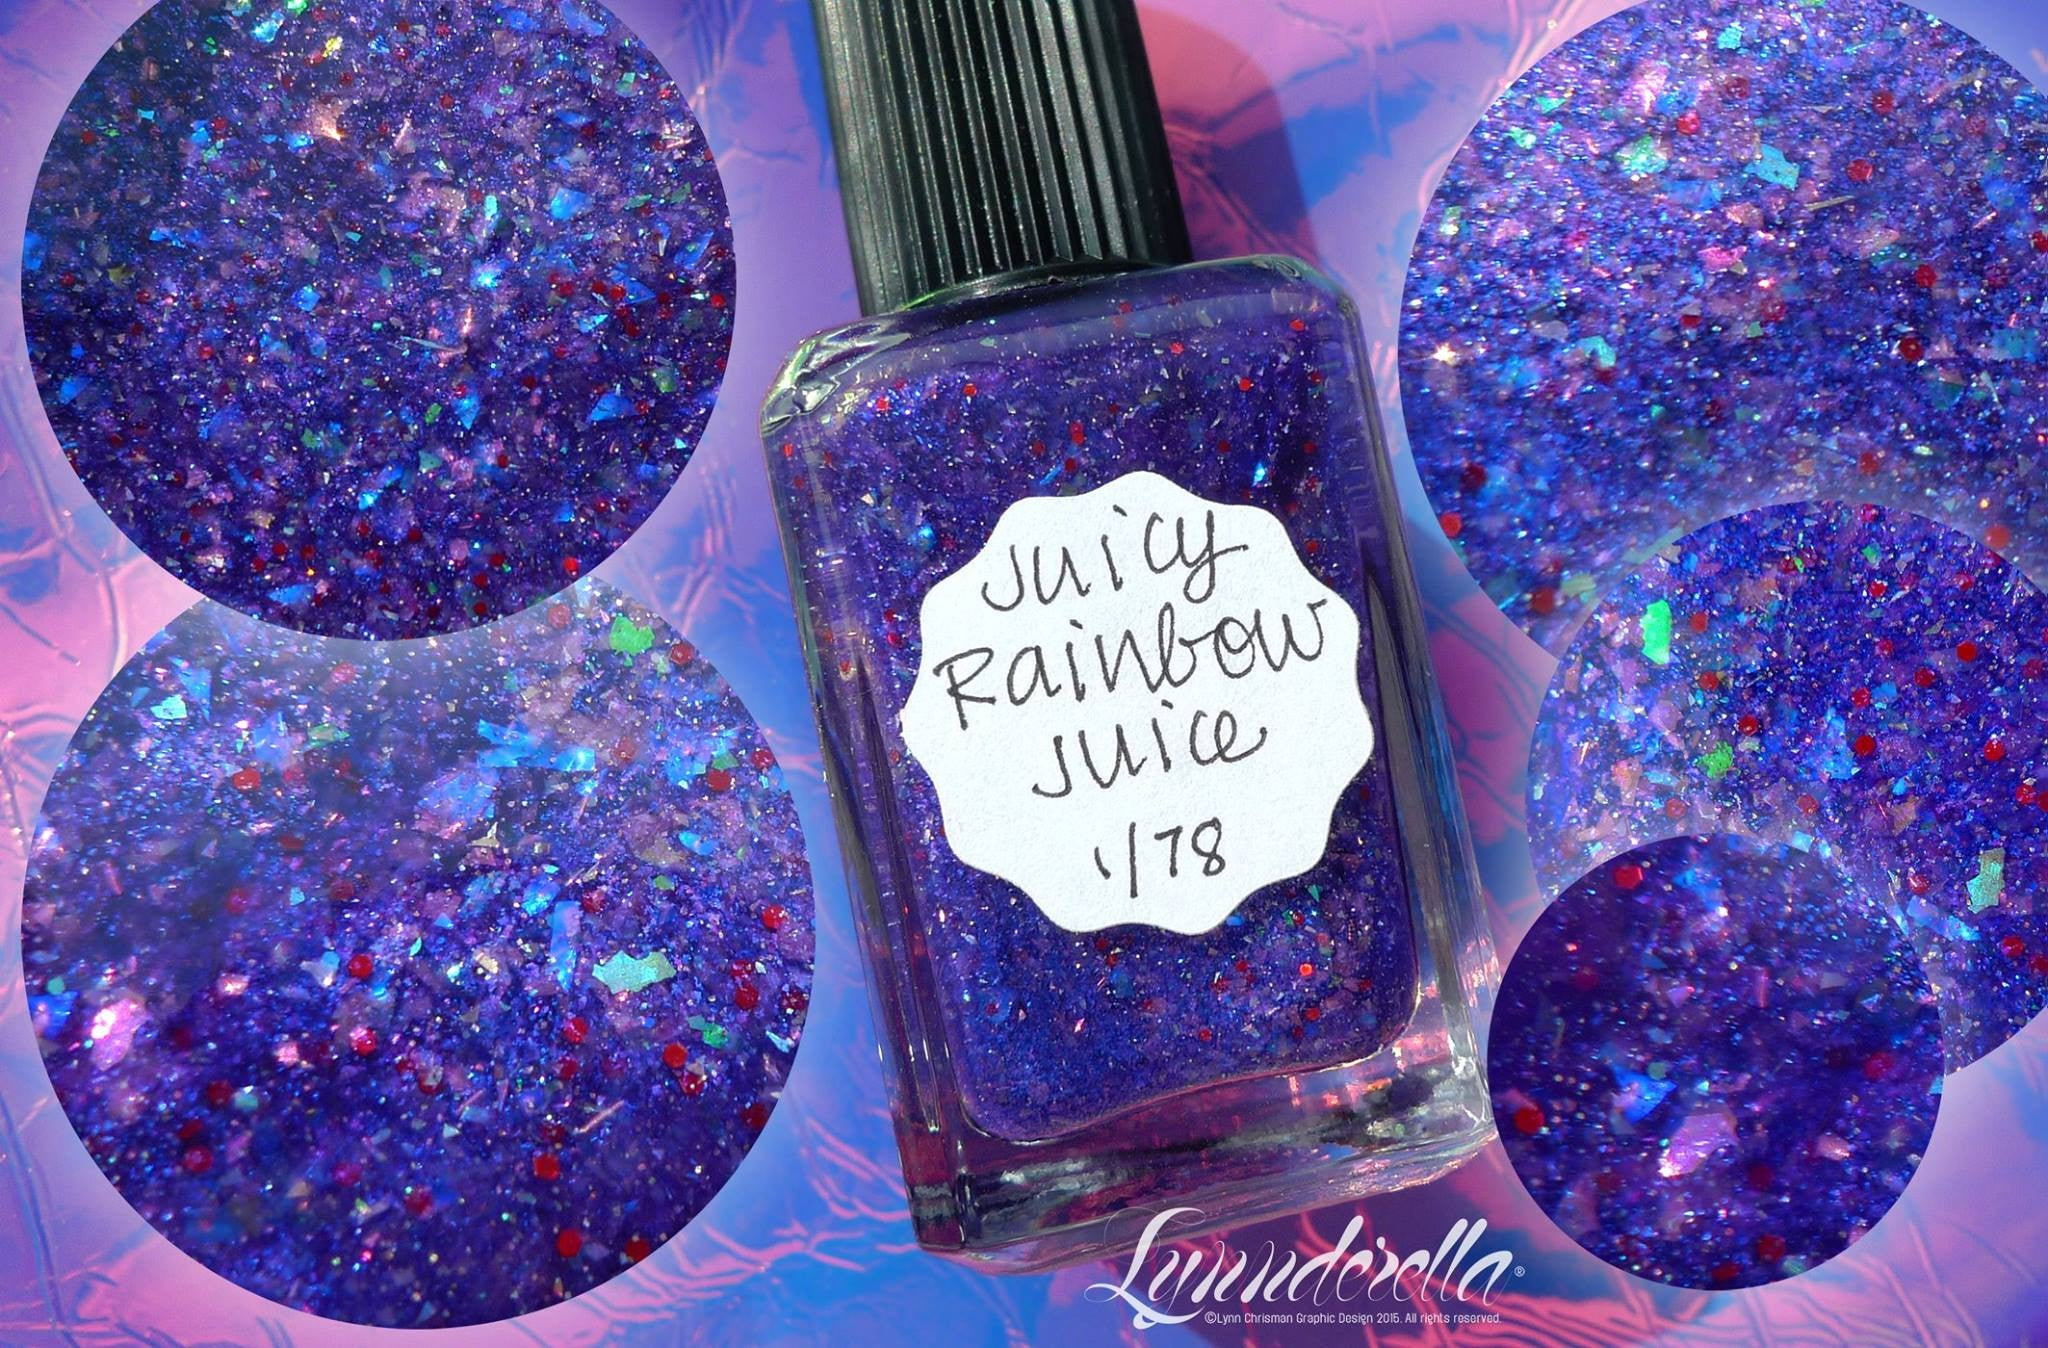 Special Edition—Juicy Rainbow Juice